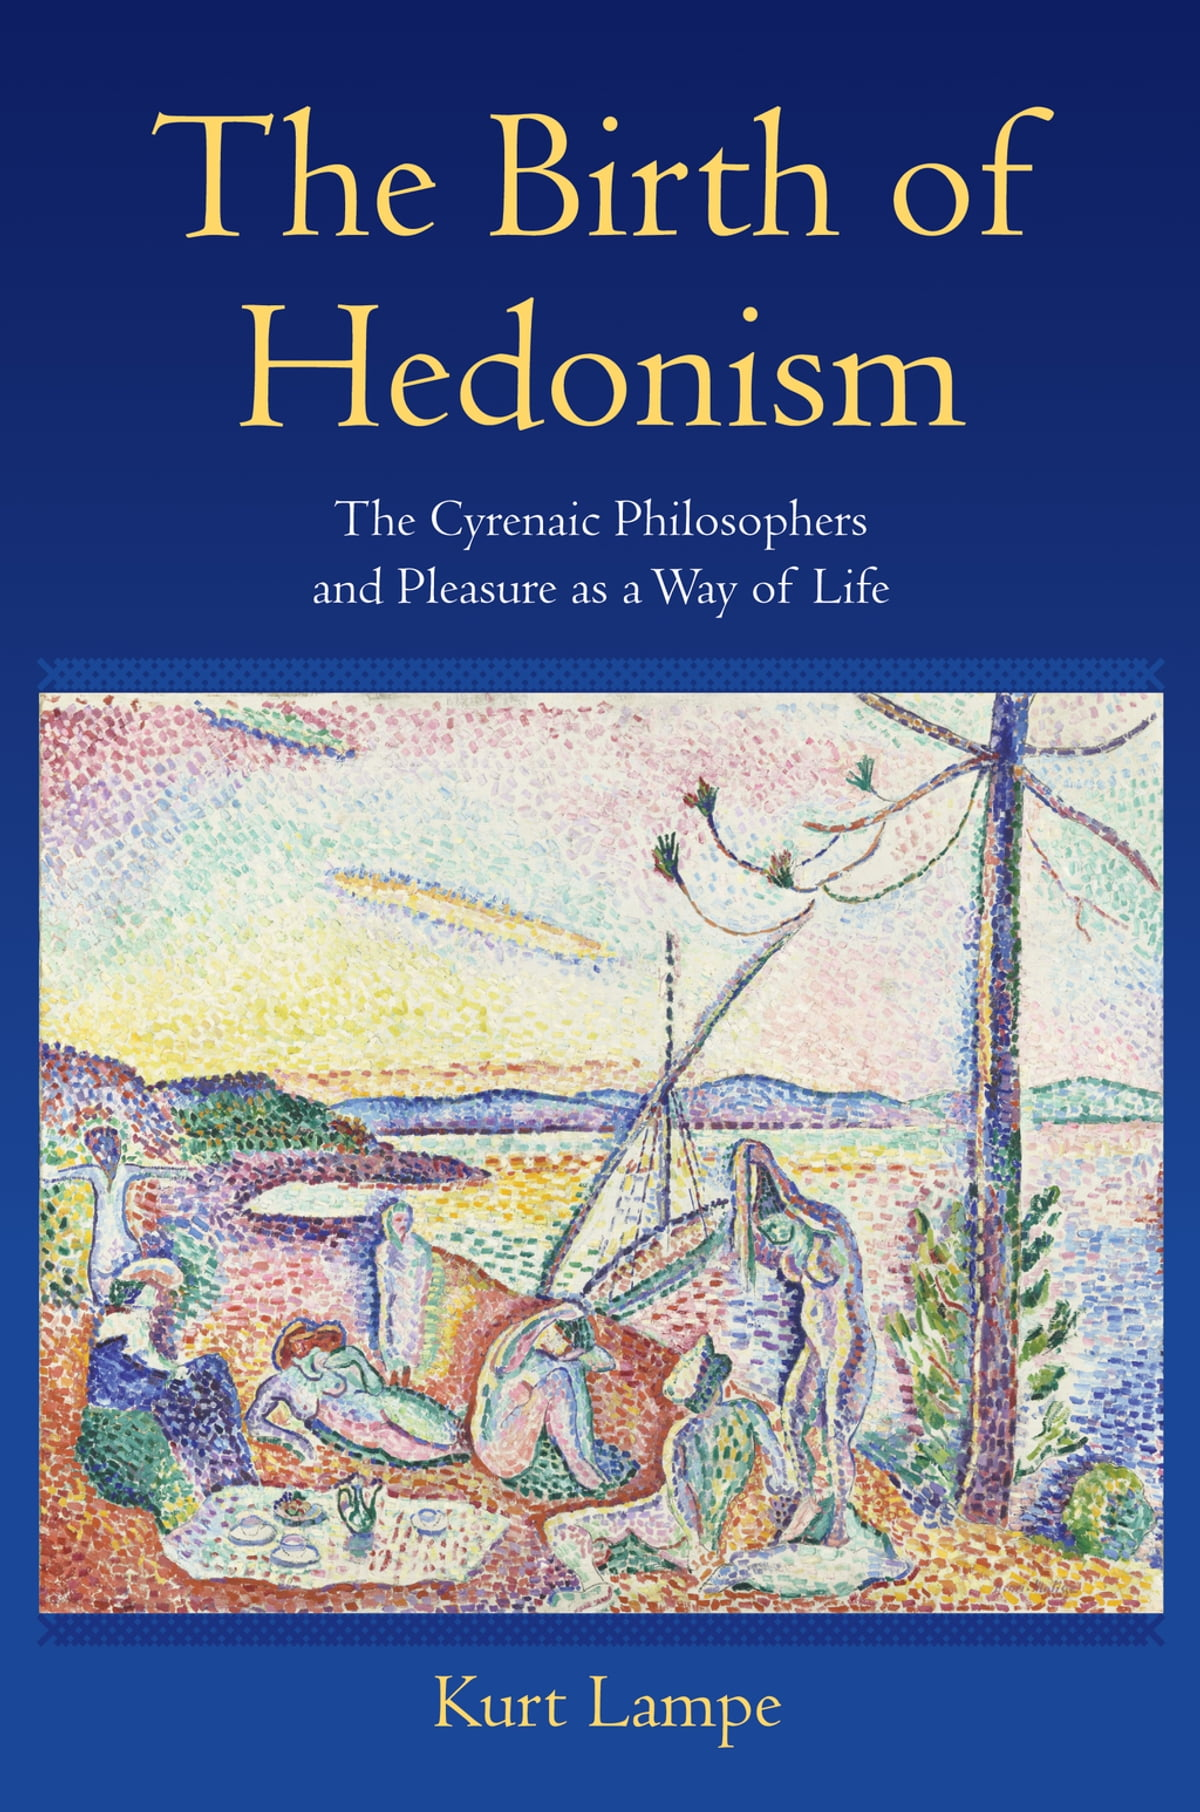 hedonism philosophy of education - HD1200×1812